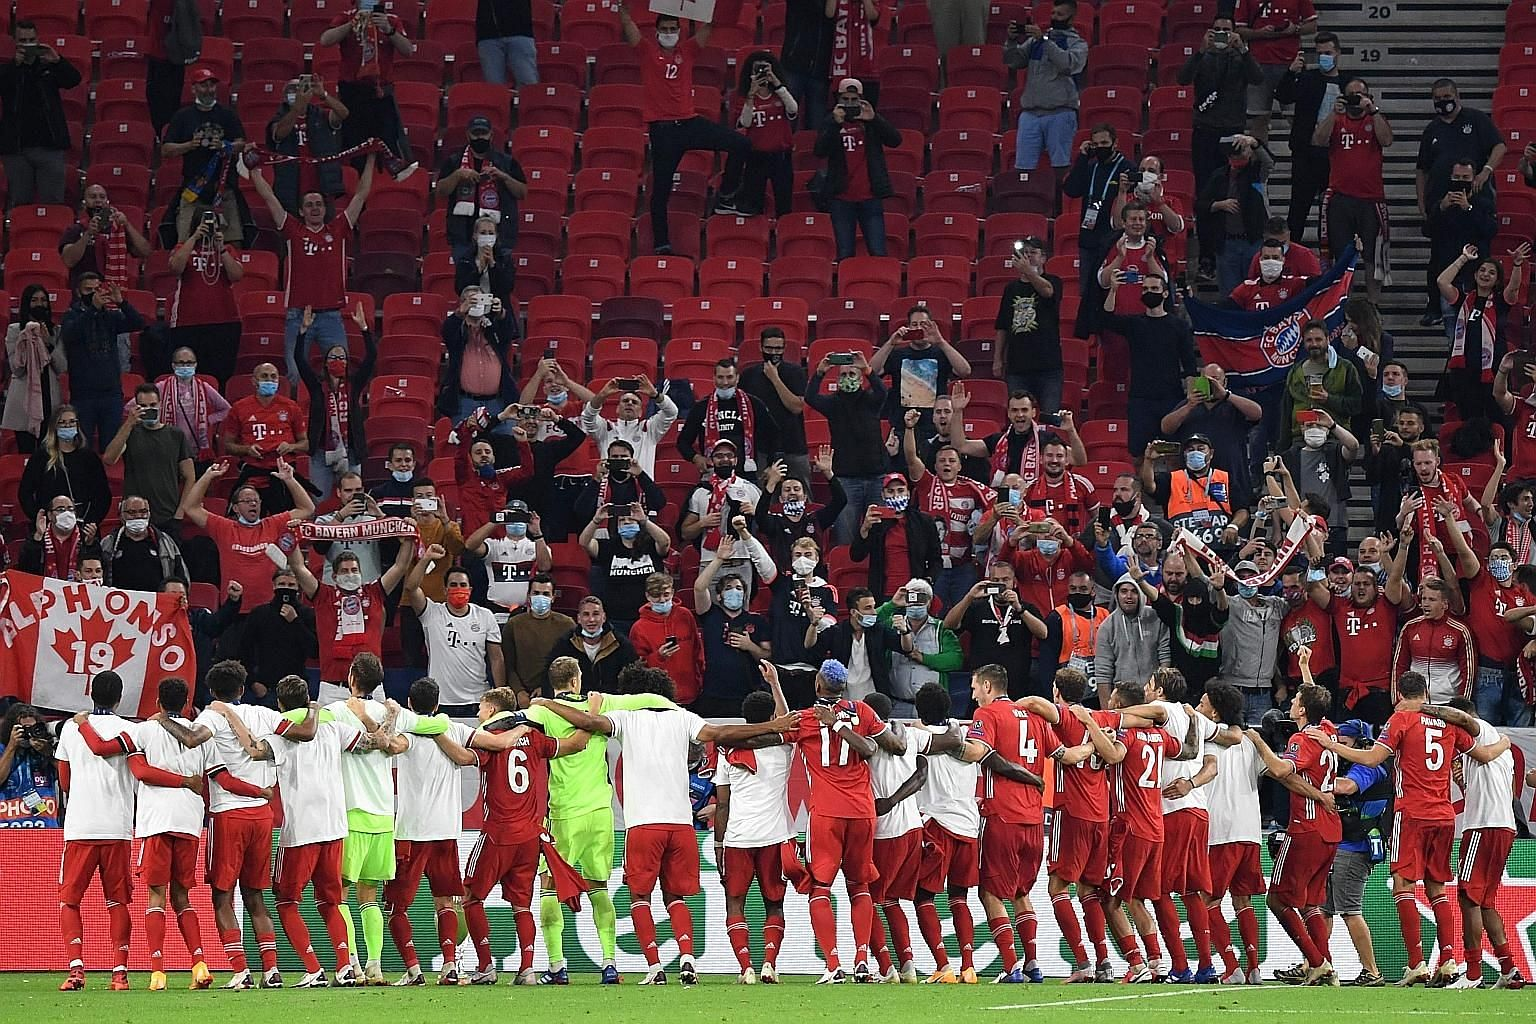 Bayern Munich players celebrating with their supporters after beating Sevilla 2-1 in extra time to win the Uefa Super Cup in Budapest, Hungary, on Thursday.